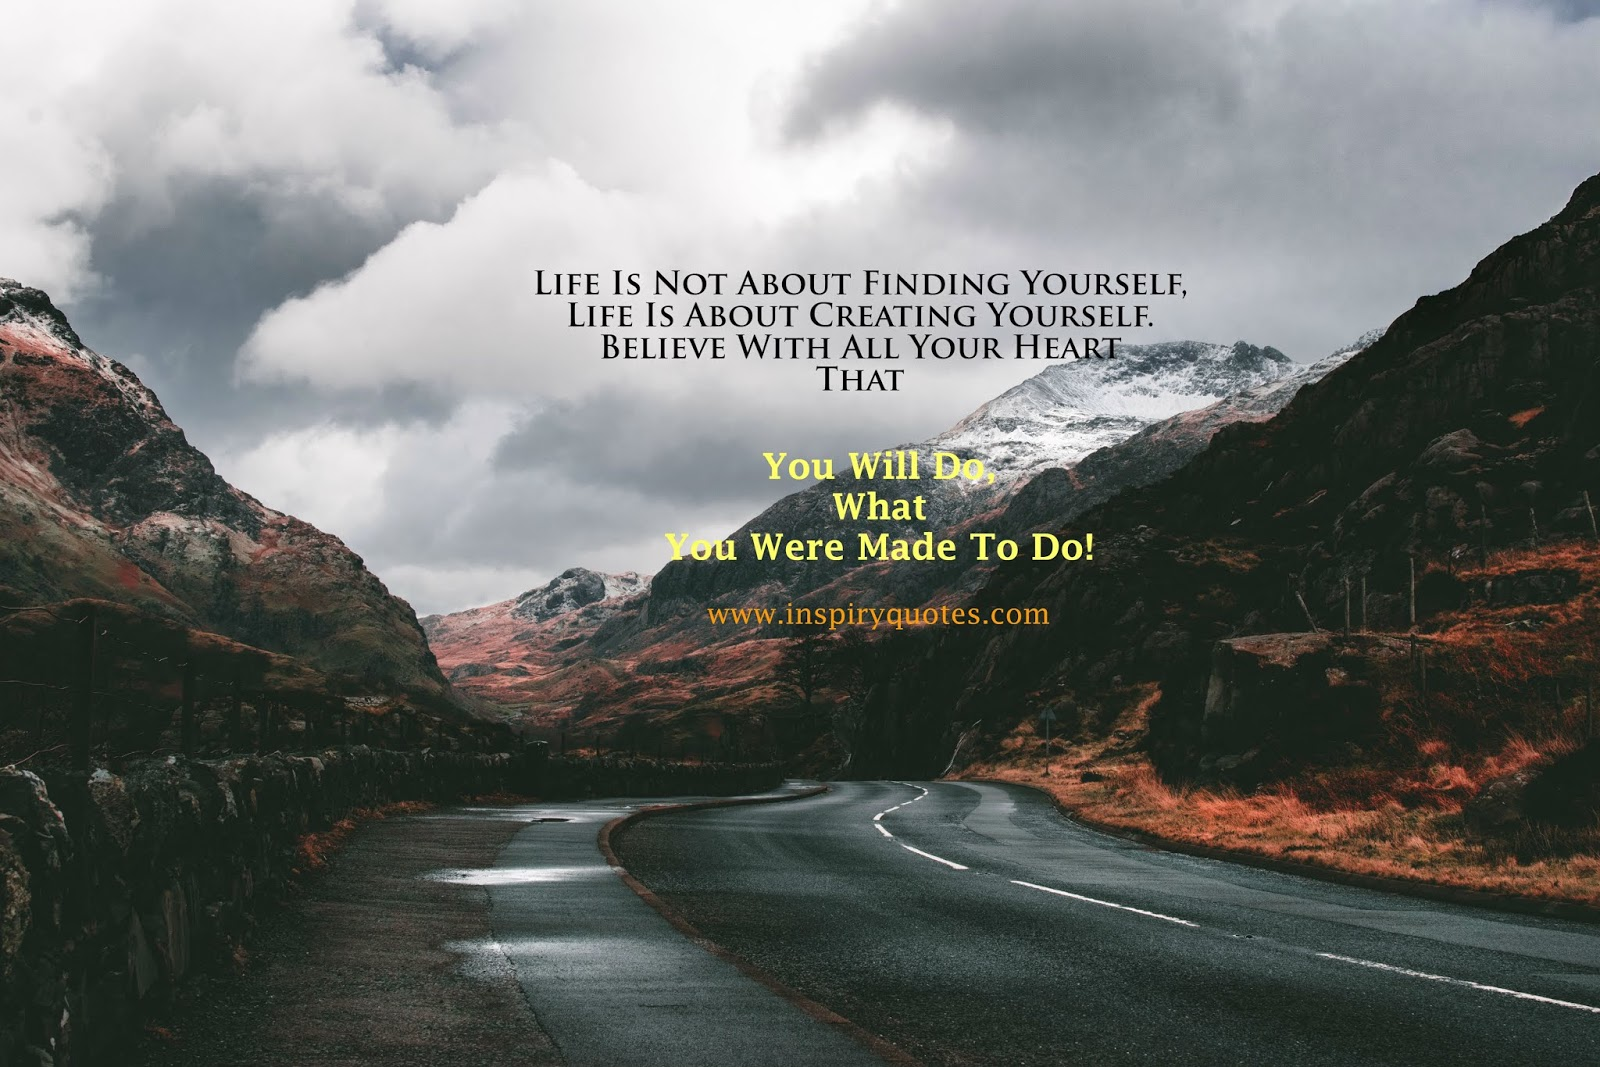 Inspirational Motivational Quotes About Life In English Images Hd